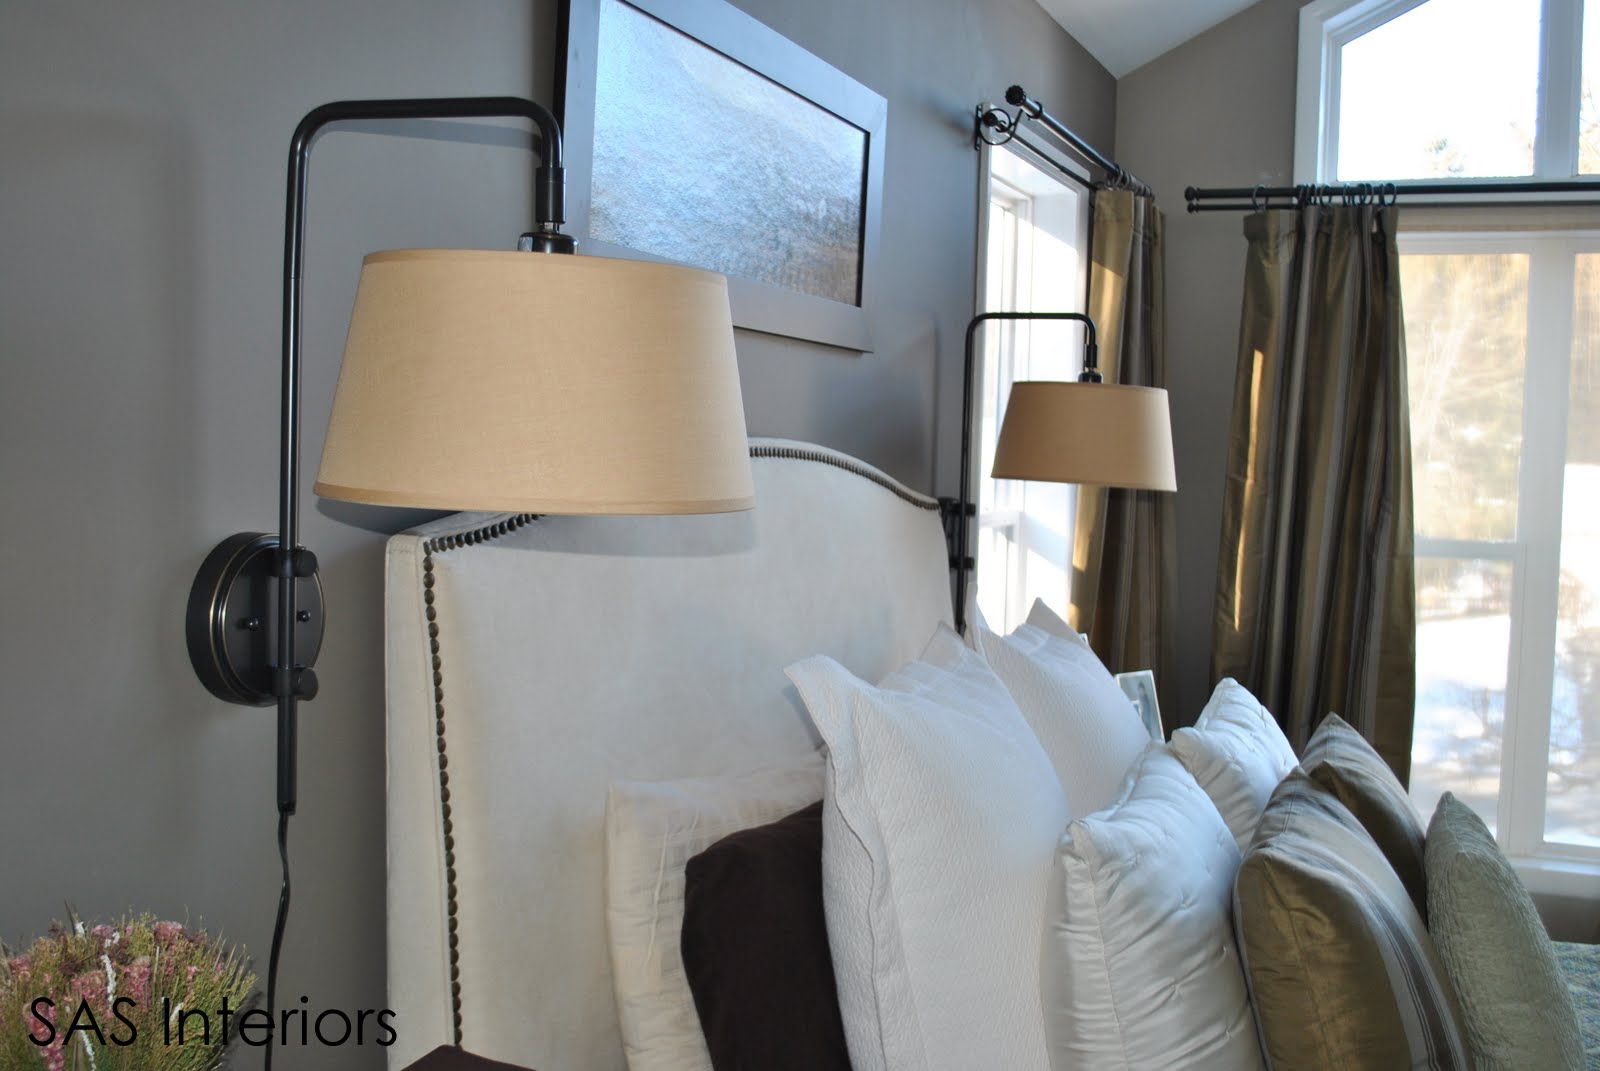 Wall Sconces In Bedroom : Dealing with a Design Dilemma and Creating a Smart Solution: Wall Sconces - Jenna Burger